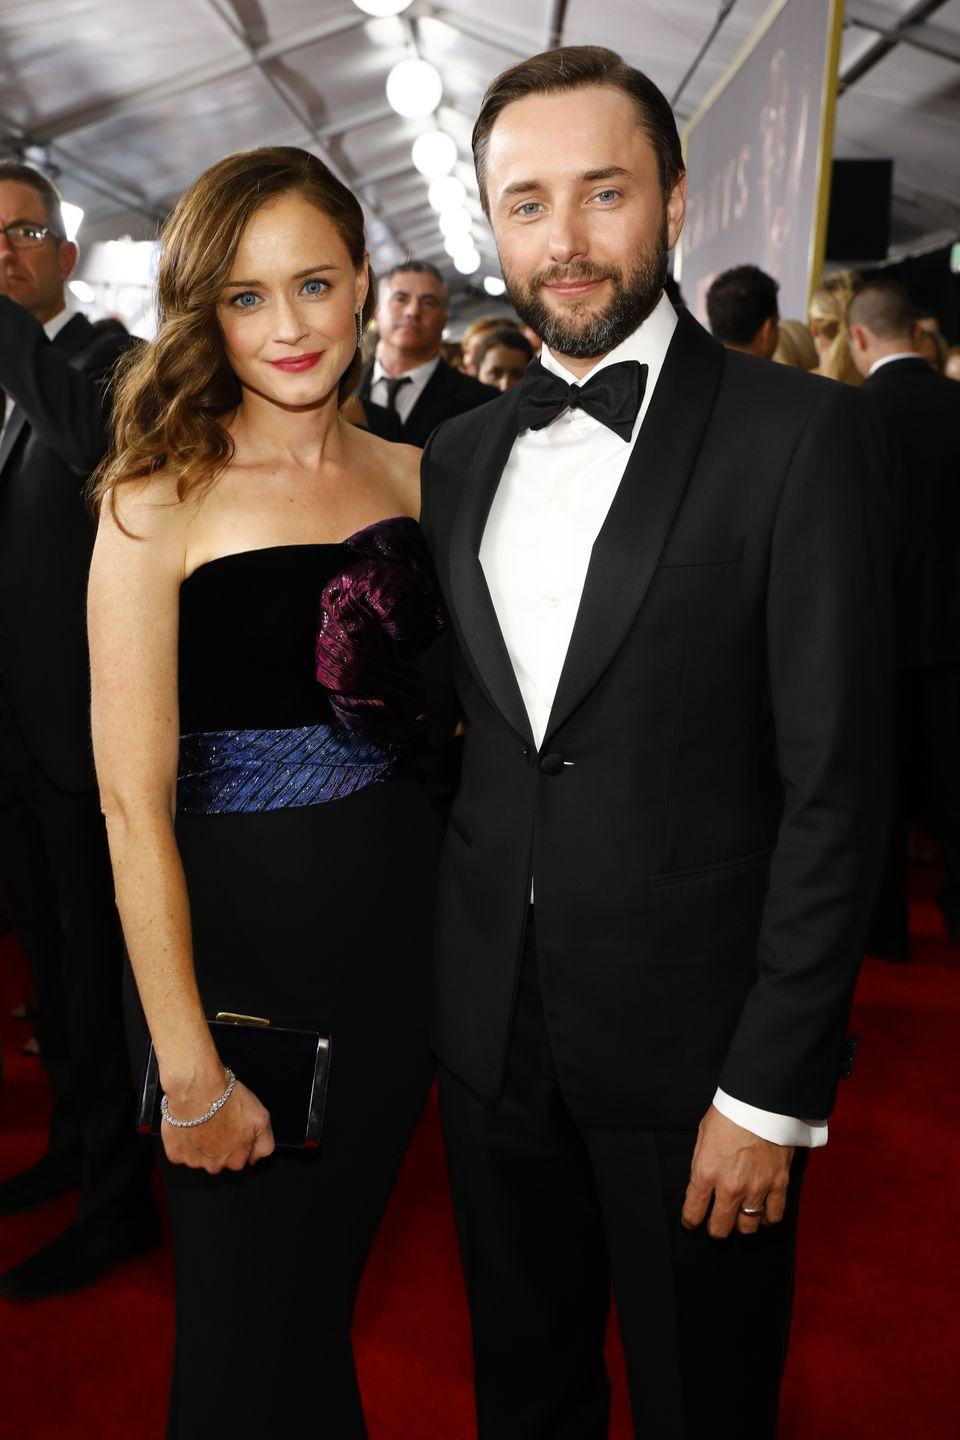 """<p>Alexis Blendel and her husband Vincent Kartheiser, whom she met on the set of <em>Mad Men</em>, like to keep to themselves, despite being on hugely popular TV shows. They were secretly married in 2014, and Alexis <a href=""""http://www.eonline.com/news/766095/alexis-bledel-is-a-mom-gilmore-girls-welcomes-baby-with-husband-vincent-kartheiser"""" rel=""""nofollow noopener"""" target=""""_blank"""" data-ylk=""""slk:gave birth to their first child in 2016"""" class=""""link rapid-noclick-resp"""">gave birth to their first child in 2016</a>, also without anyone knowing. </p><p>Her <em>Gilmore Girls</em> co-star Scott Patterson (a.k.a. Luke Danes) spilled the beans in an interview. """"It was great to see her. She's really blossomed as a woman and now she's a proud new mother and married and happy,"""" he told <a href=""""https://www.glamour.com/story/gilmore-girls-scott-patterson-on-luke-and-lorelai-relationship-in-netflix-revival?mbid=social_fb_fanpage"""" rel=""""nofollow noopener"""" target=""""_blank"""" data-ylk=""""slk:Glamour"""" class=""""link rapid-noclick-resp""""><em>Glamour</em></a>.<br></p>"""